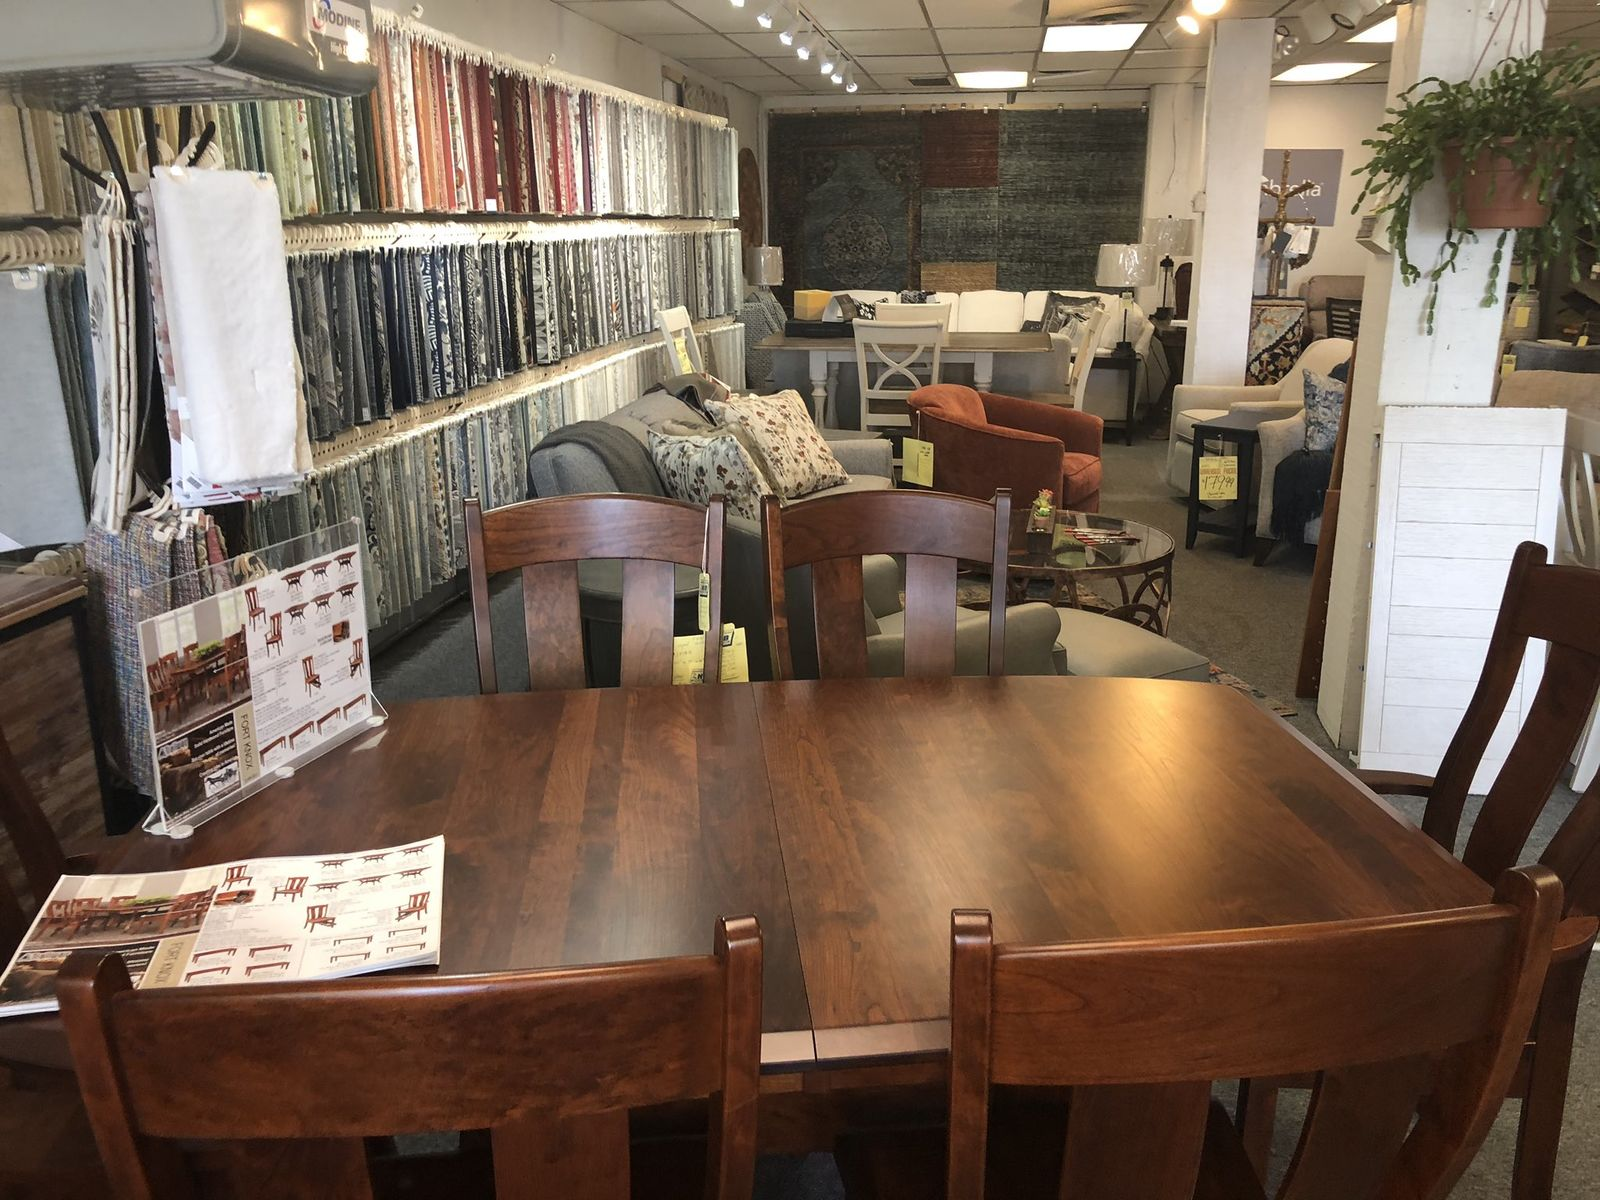 Hub Furniture in Portland is one of many retail stores with ownership looking forward to reopening on June 1. (WGME)<p></p>